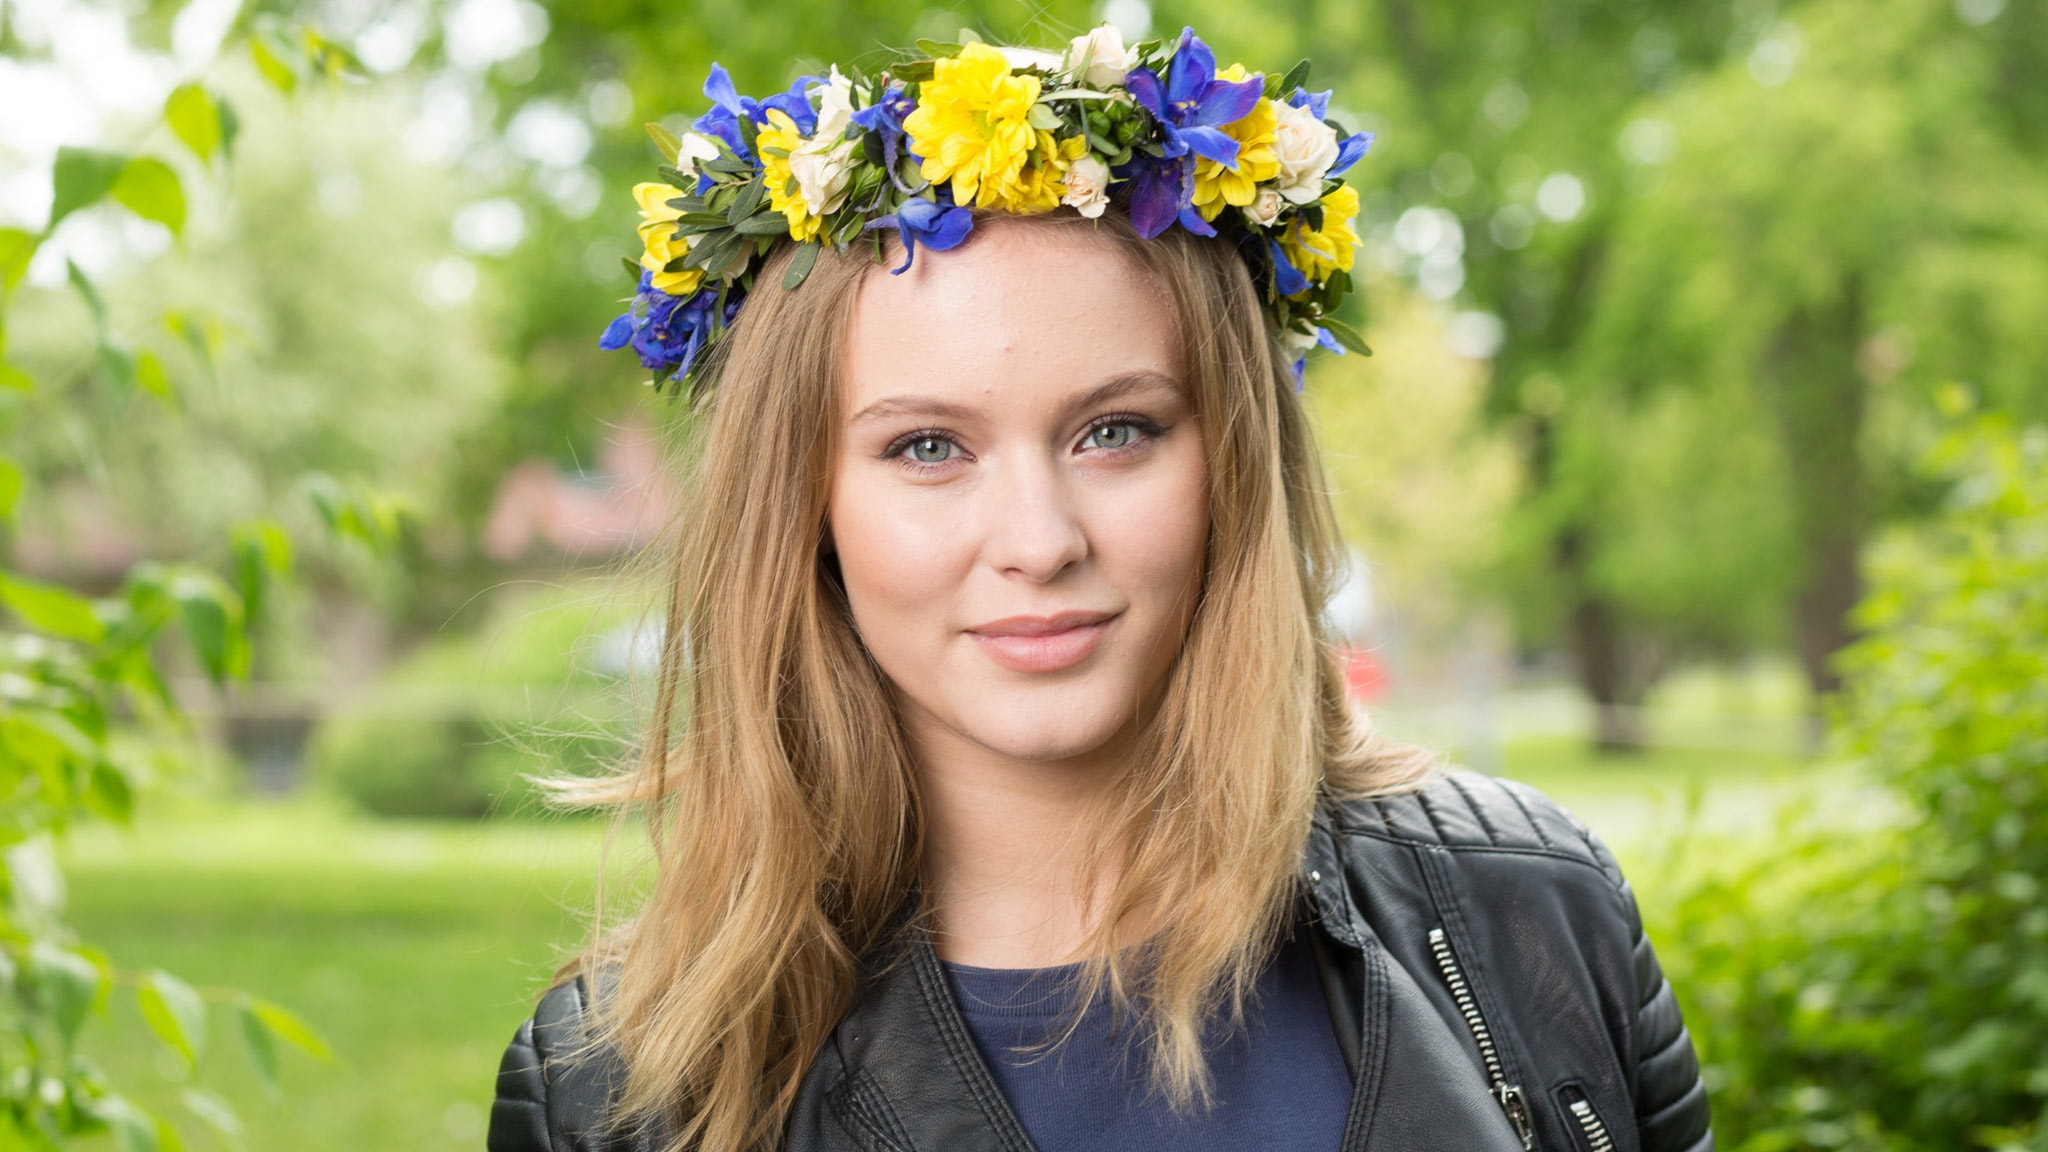 zara larsson 25 juli 2015 kl 13 00 sommar vinter i p1 sveriges radio. Black Bedroom Furniture Sets. Home Design Ideas